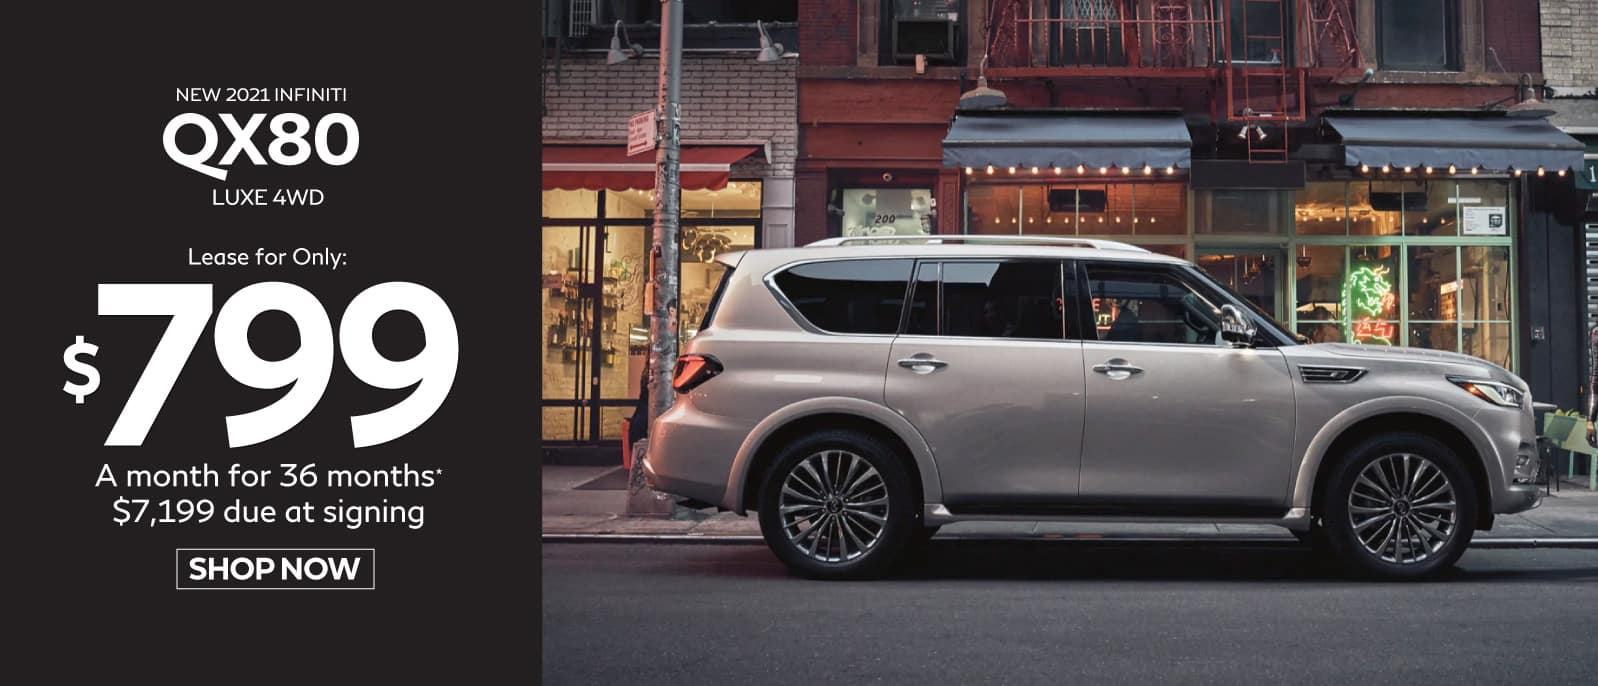 New 2021 QX80 Luxe 4WD Lease for $799 a month for 39 months, $7199 due at signing